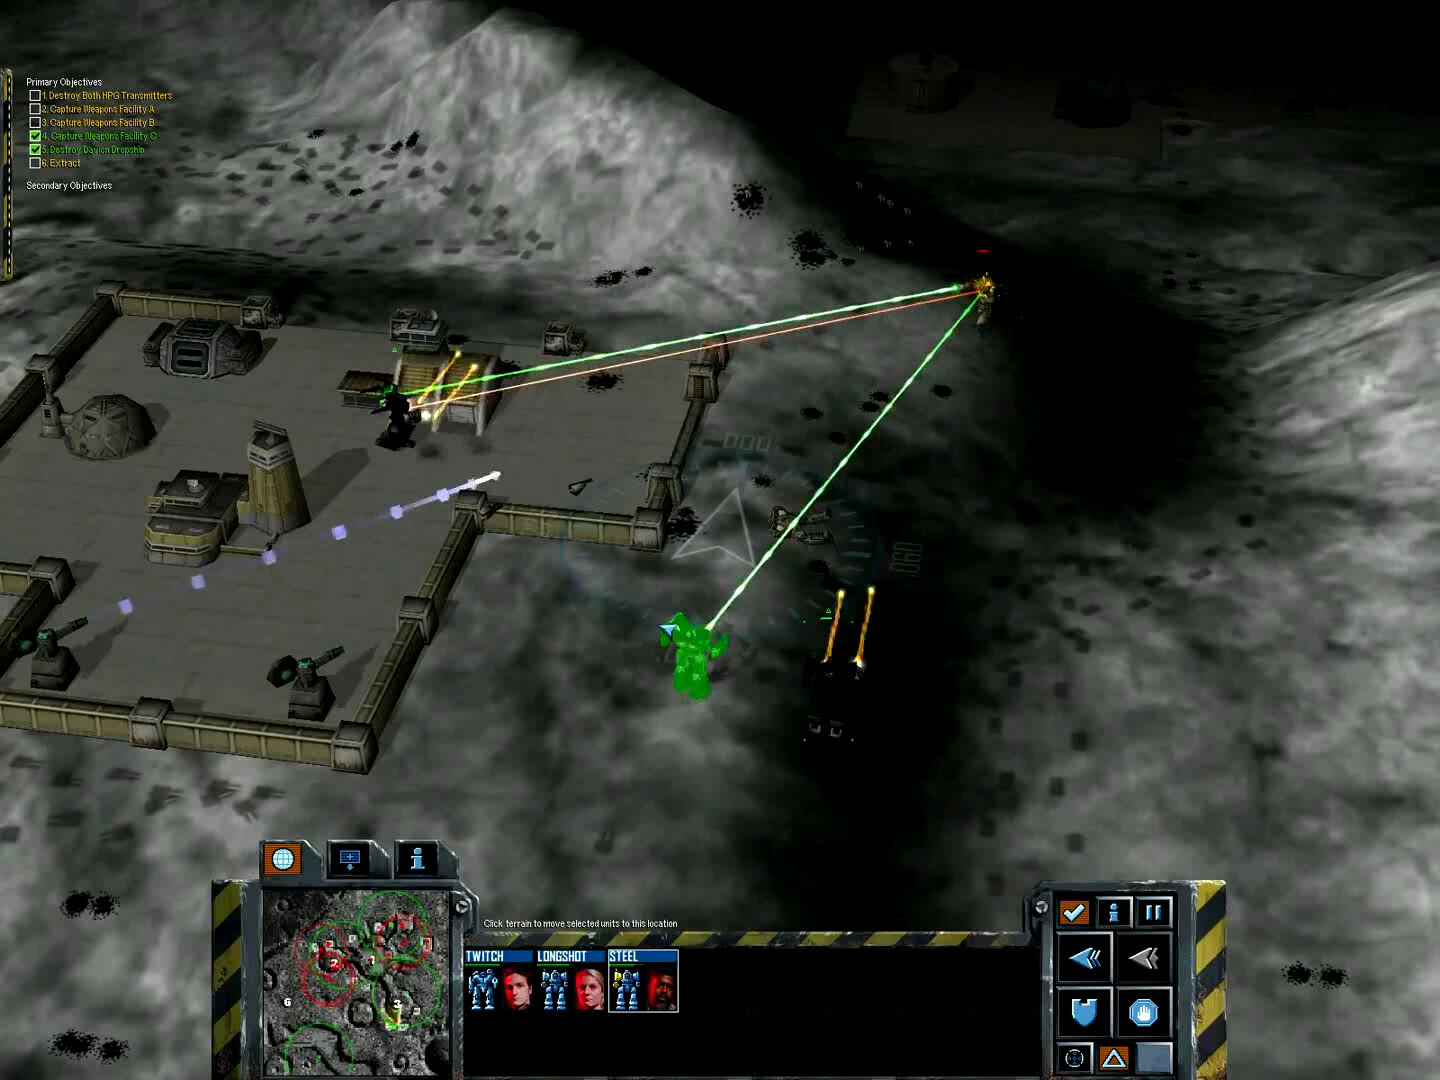 MechCommander 2 - Liao Campaign - Mission 3 - Remote Assault: Eclipse